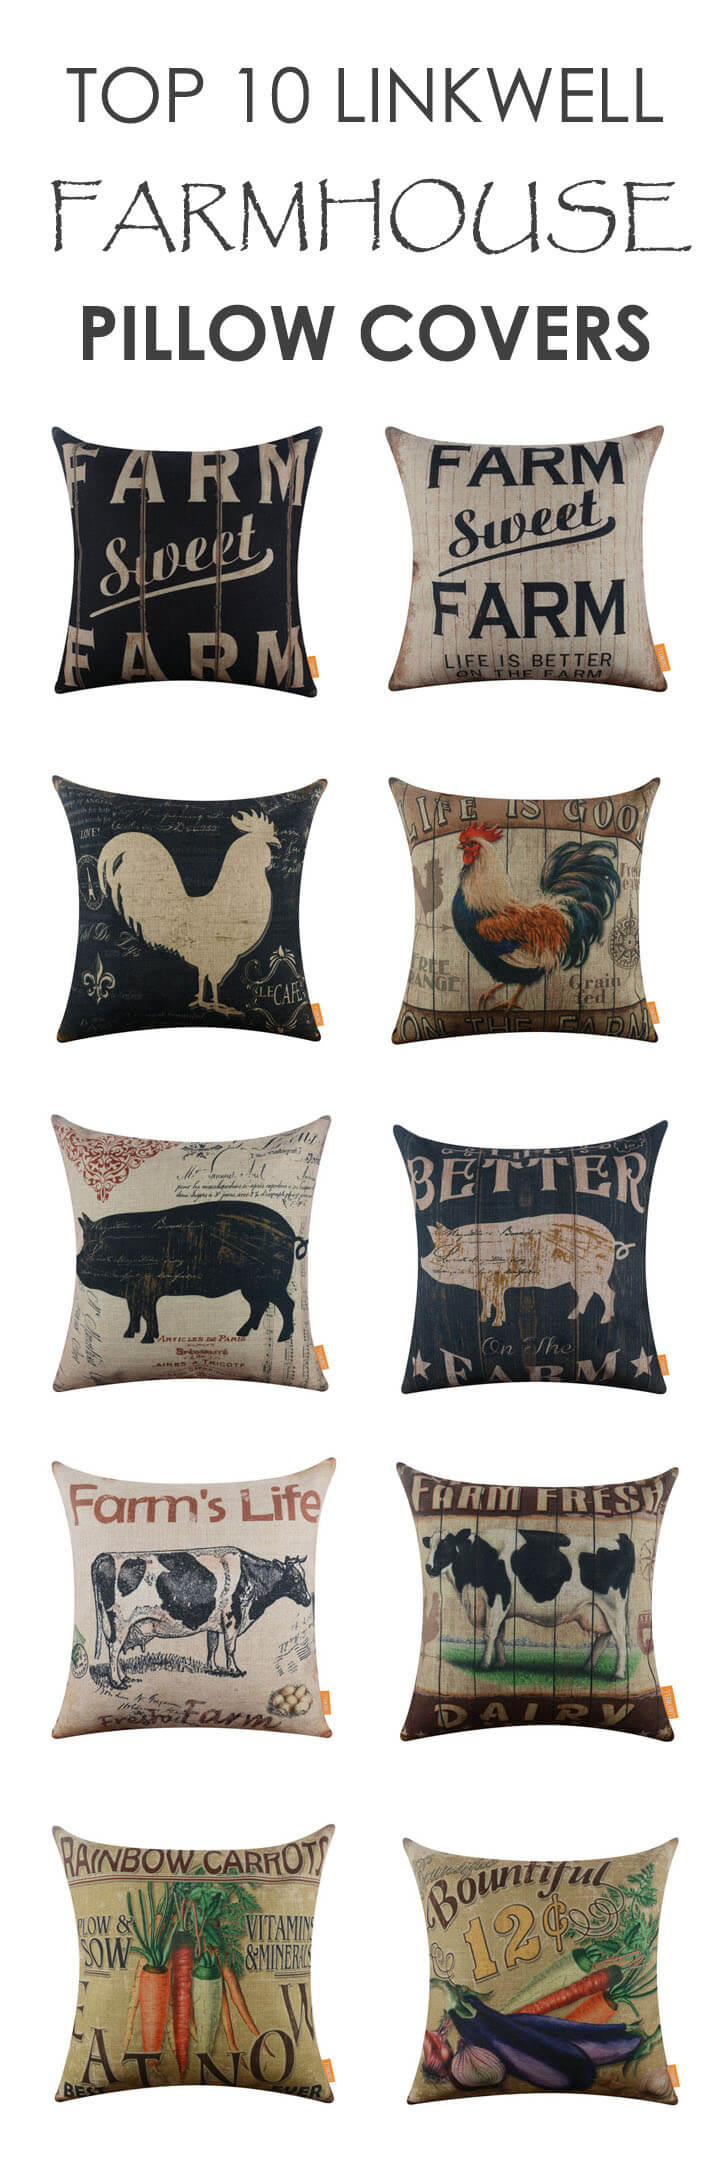 top 10 linkwell farmhouse pillow cover